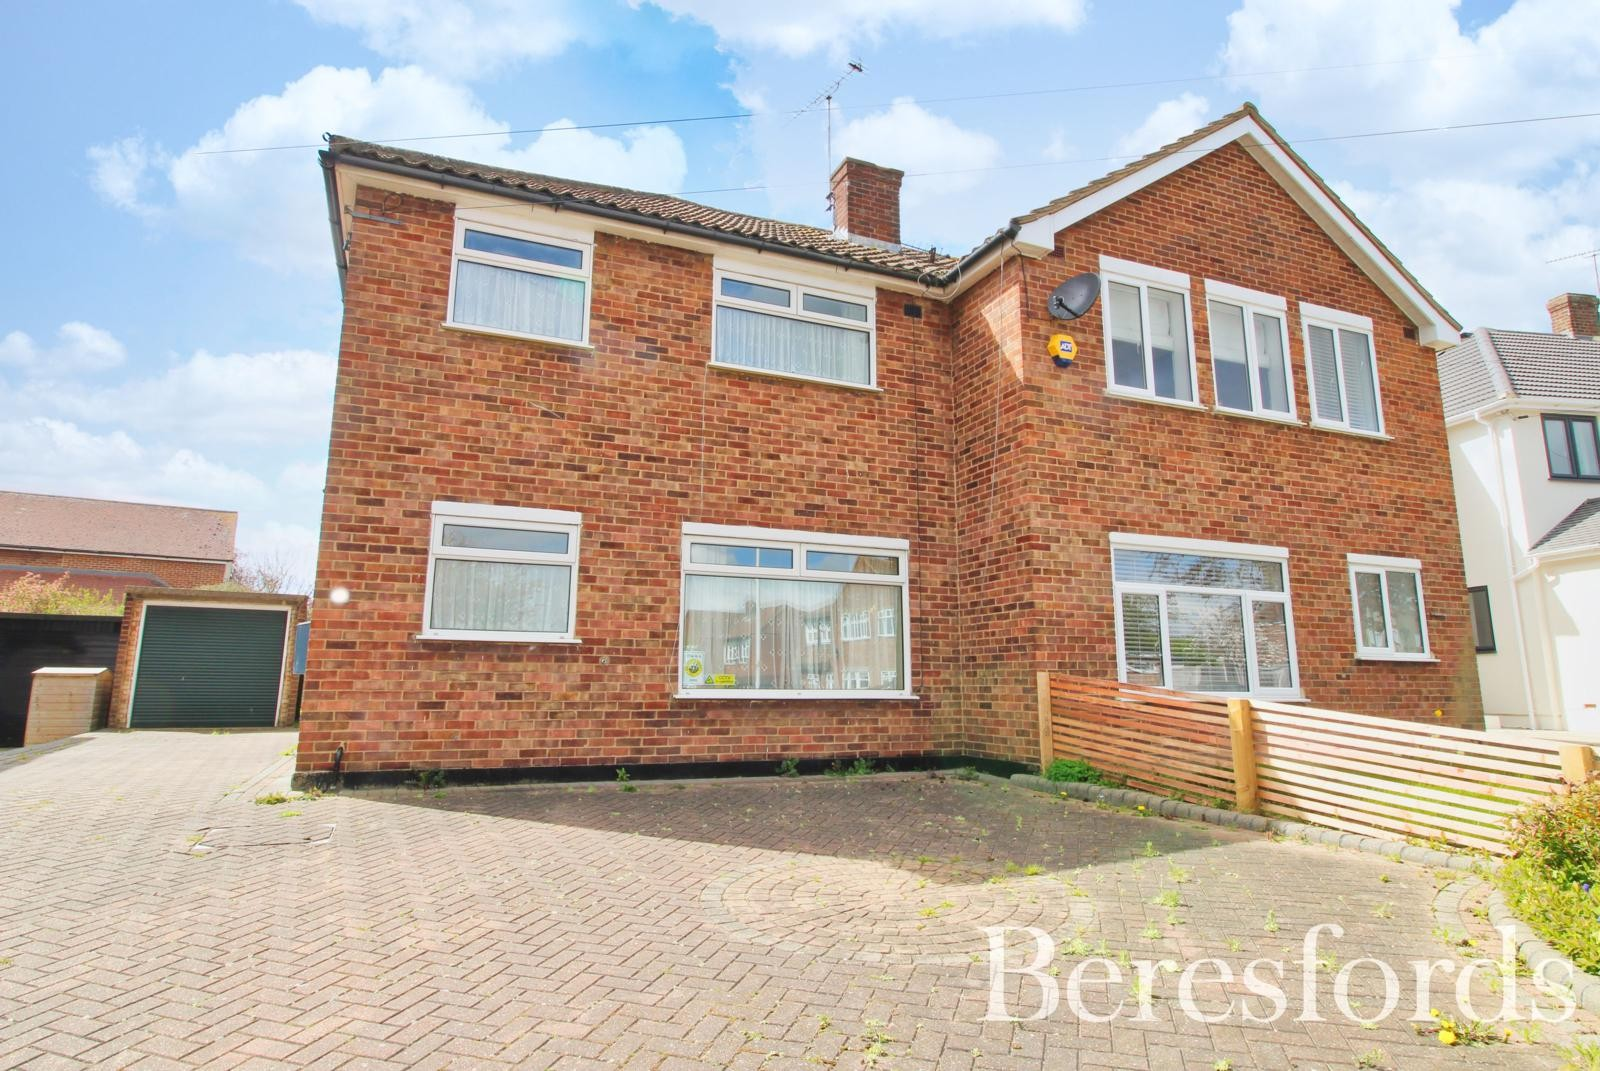 Humber Drive, Upminster, Essex, RM14